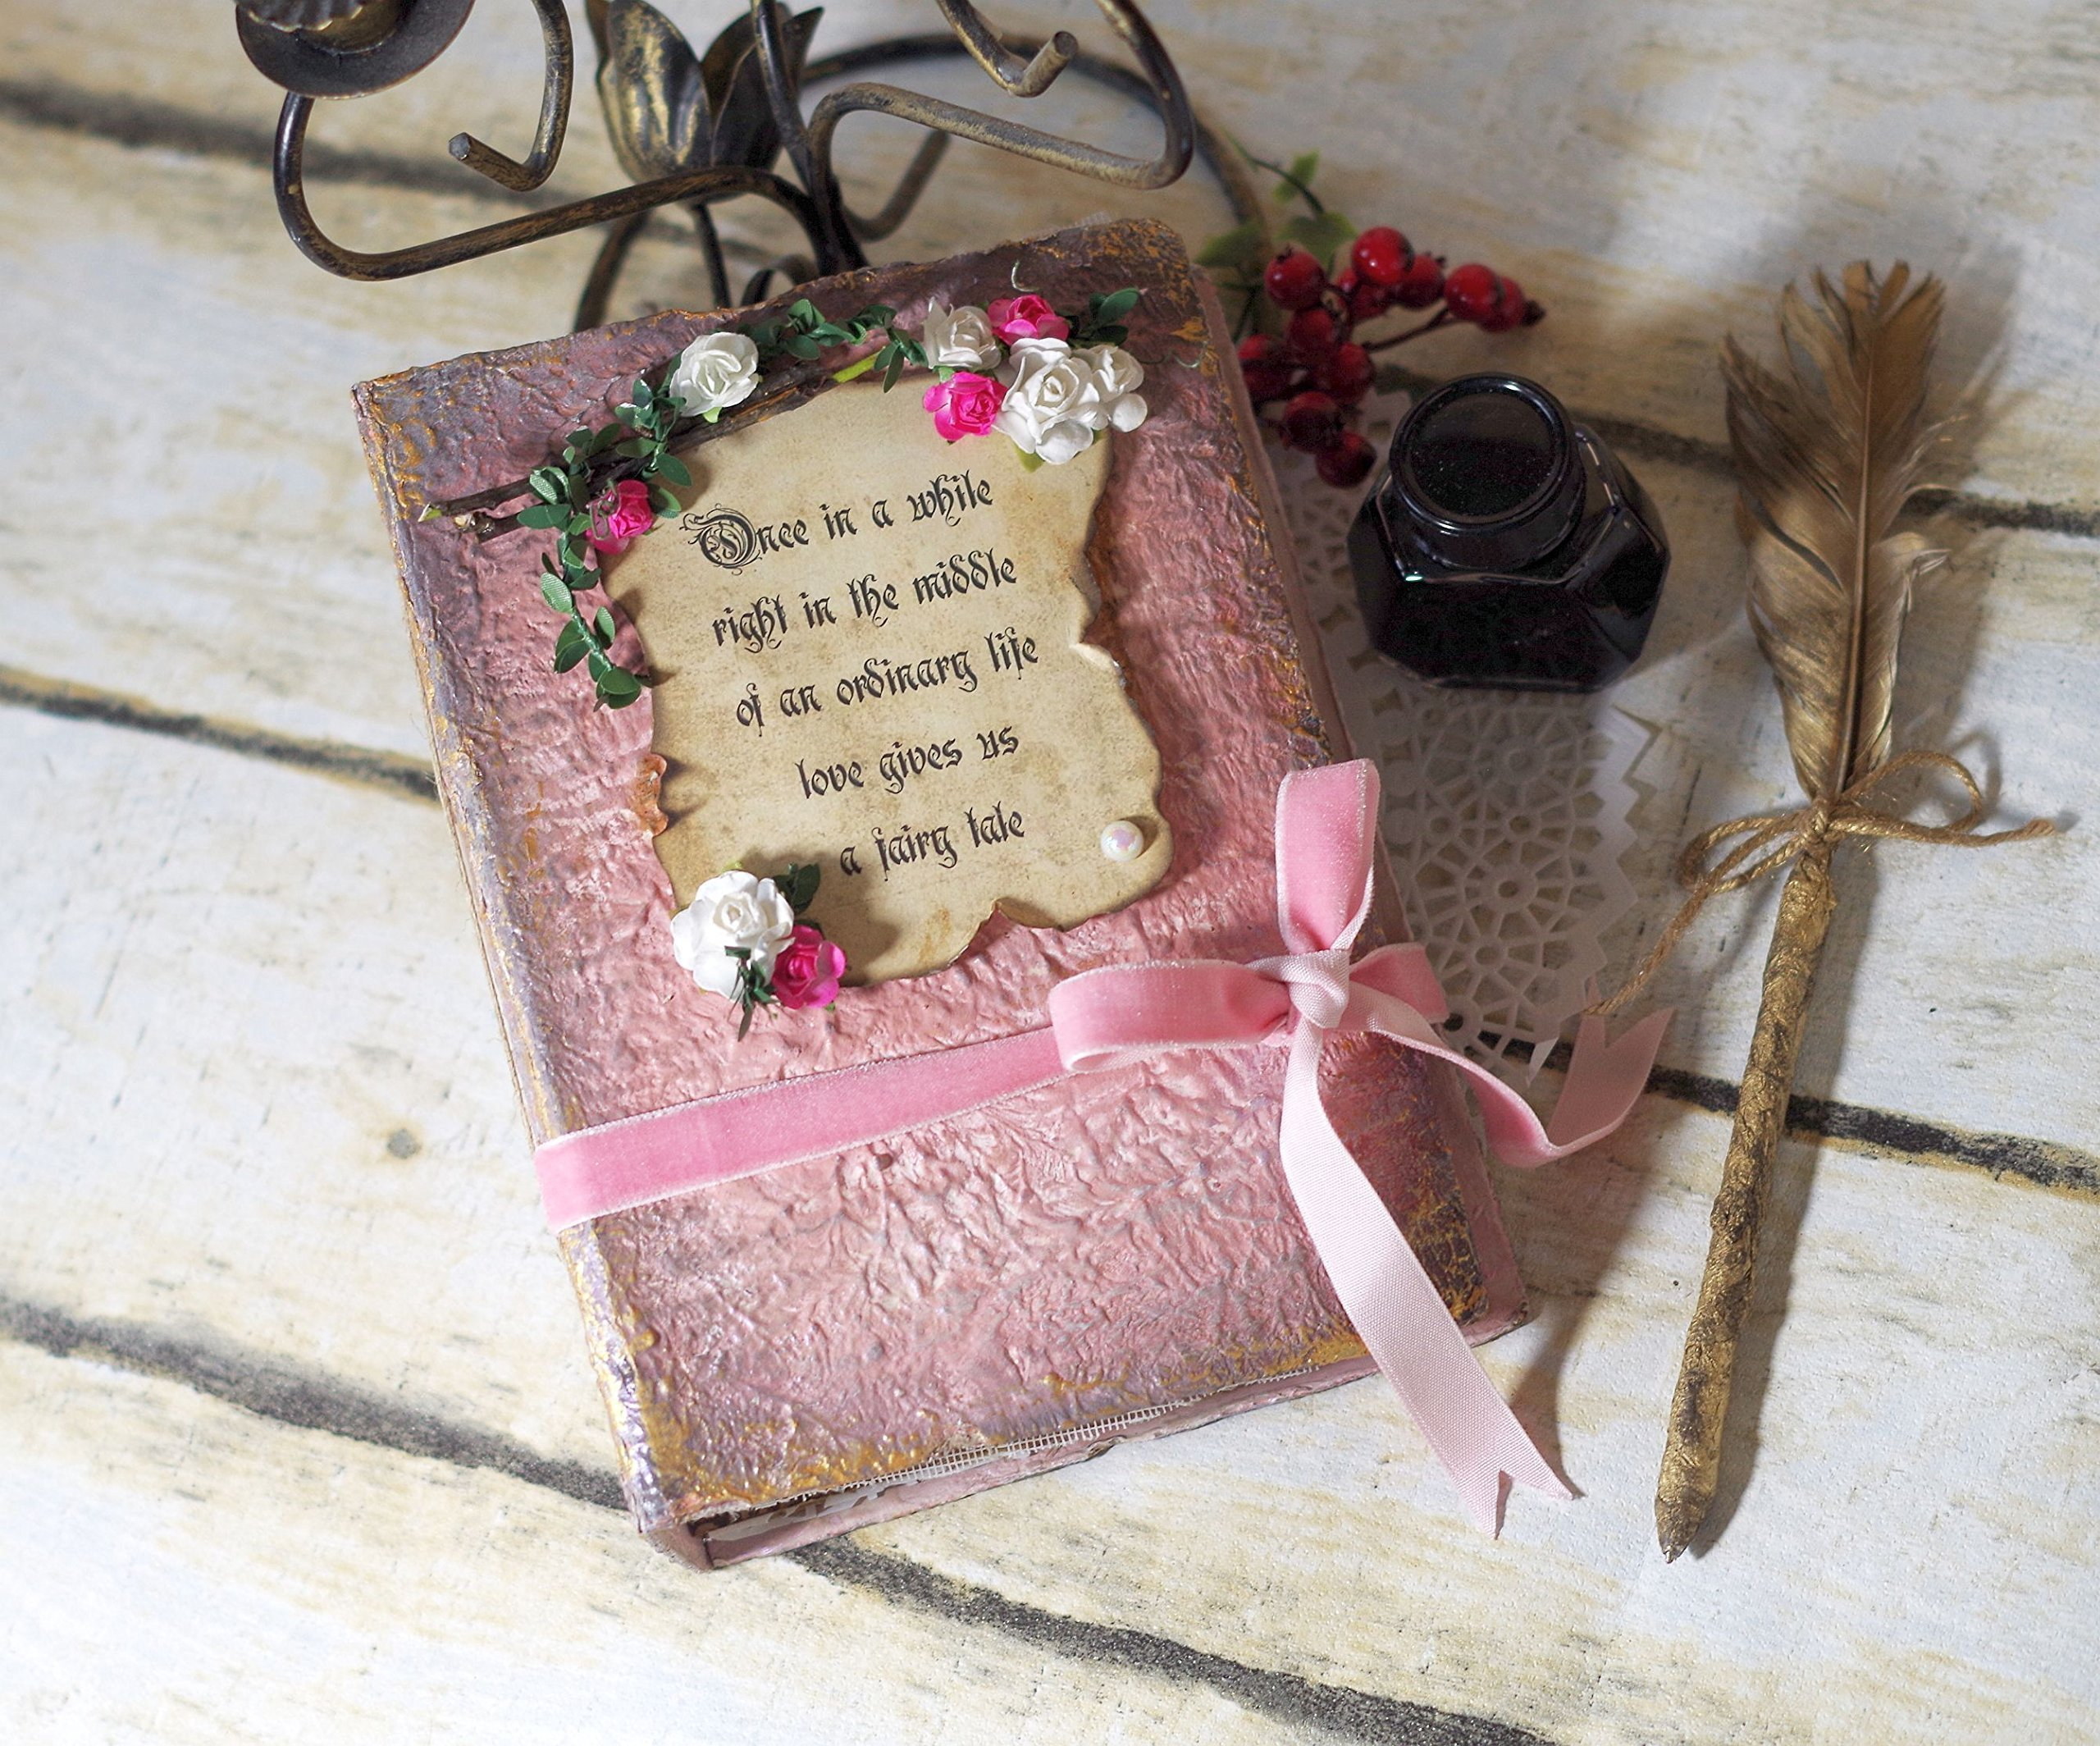 Fairytale Wedding Guestbook, Fairy tale Photo Album, Alice in Wonderland Guest book, Bridal Shower, Party, Baby girl, Memory keepsake book, Story book, Storybook, Woodland, Pale Sage Blush Pink